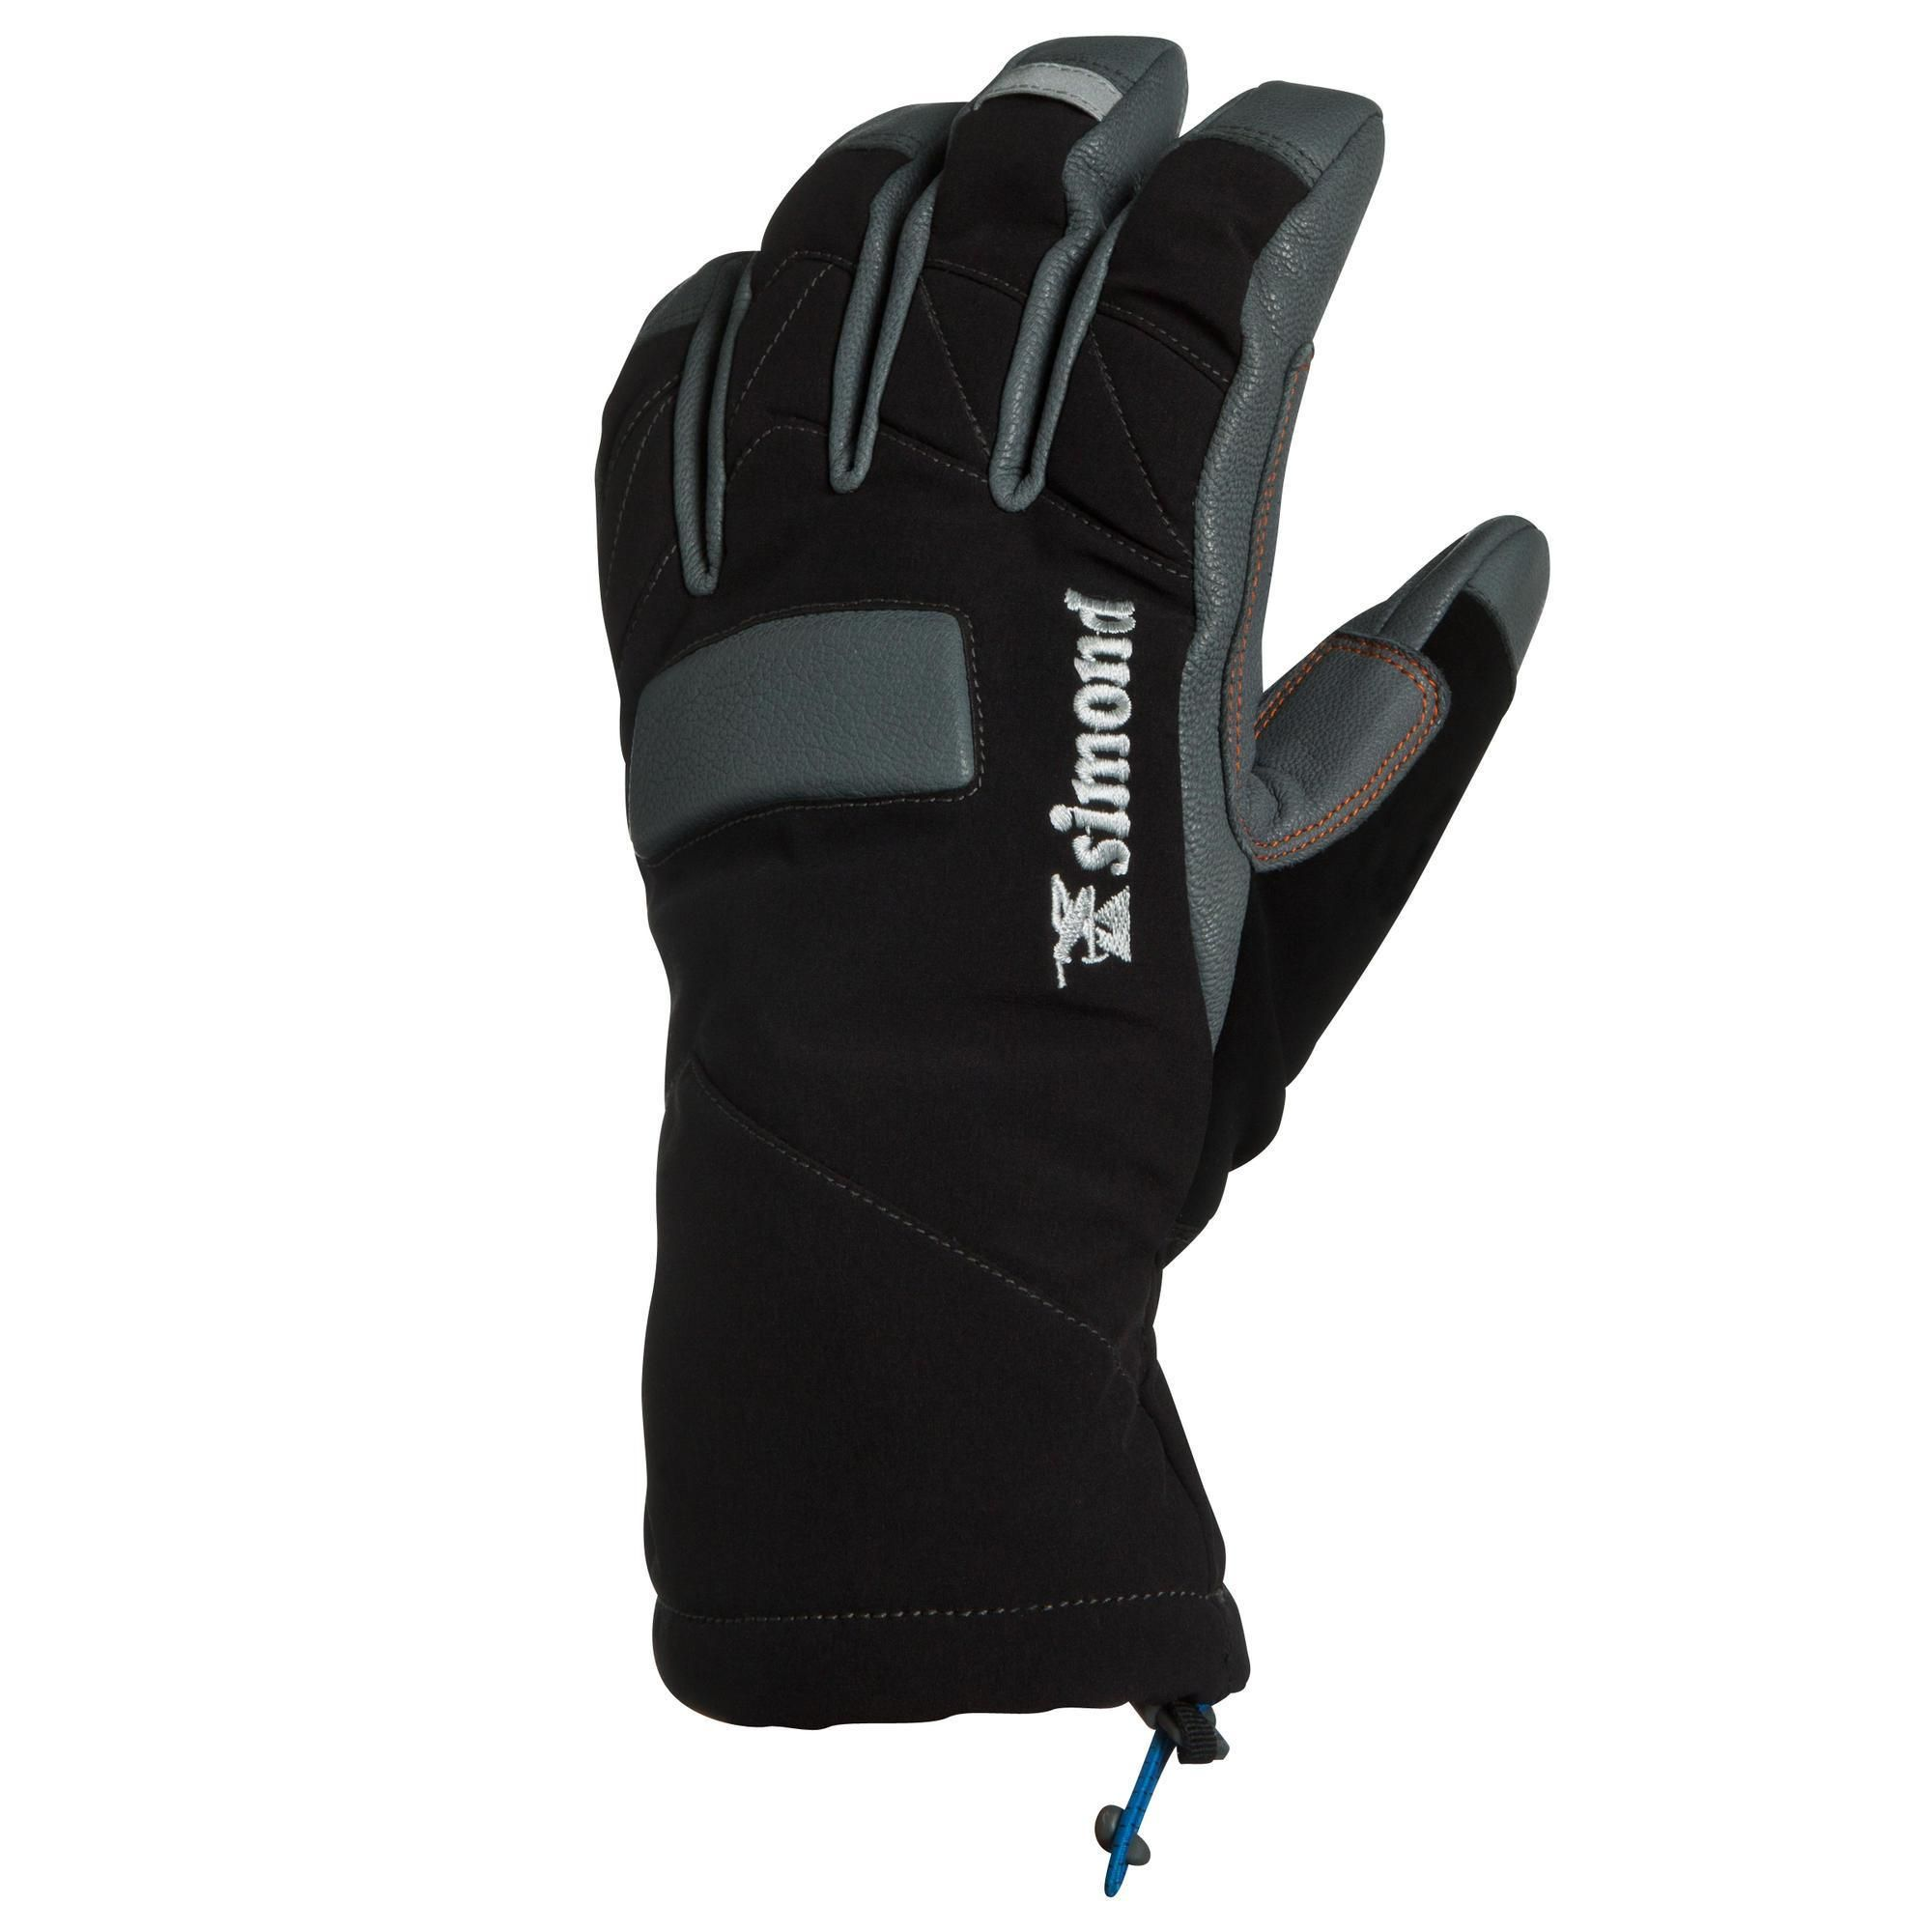 Pin By Pete Roberts On Winter Equipment Climbing Gloves Gloves Waterproof Gloves